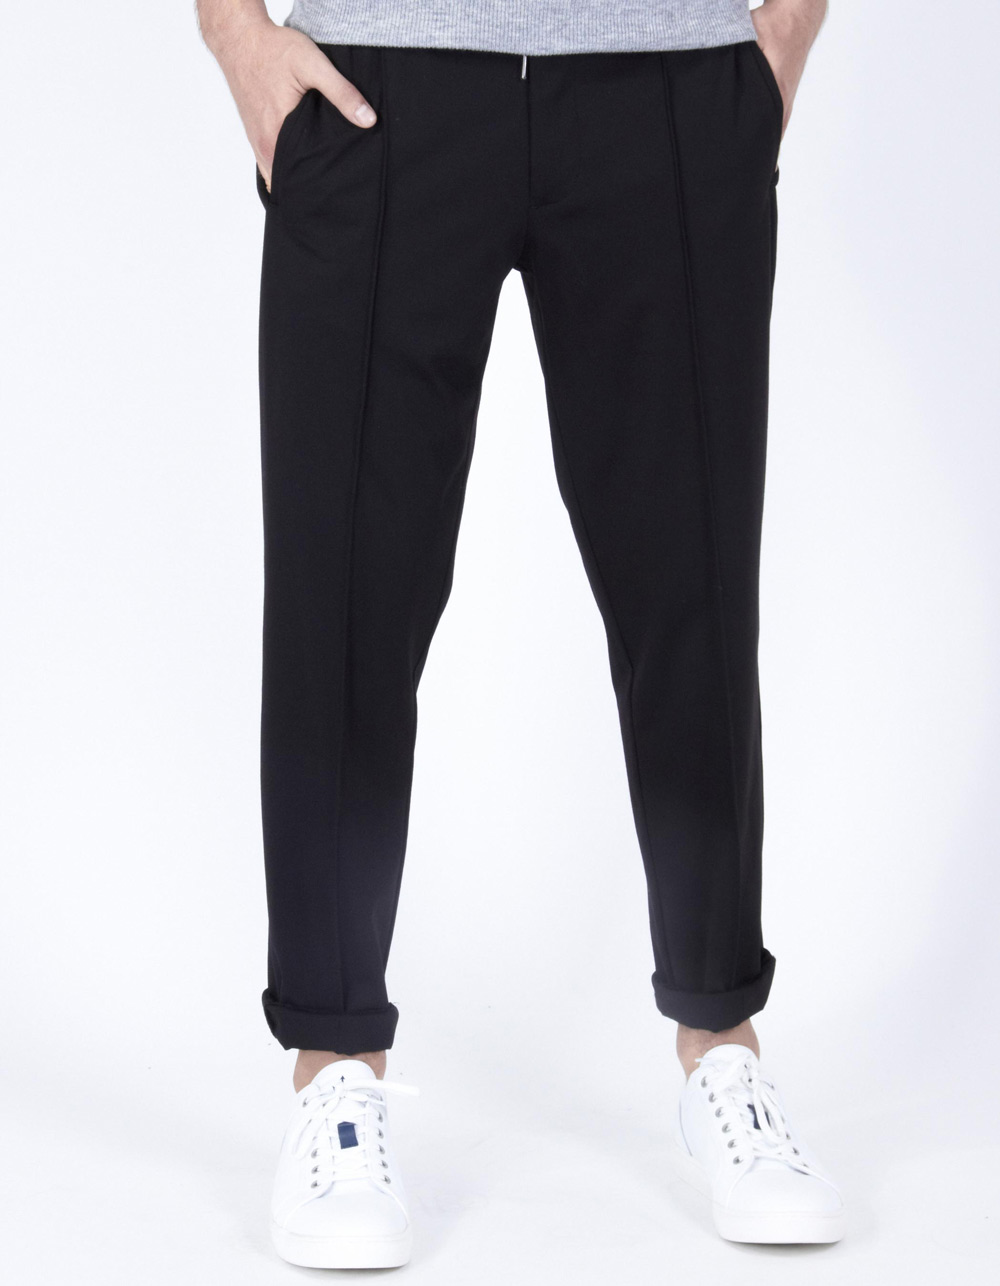 Black trousers with darts